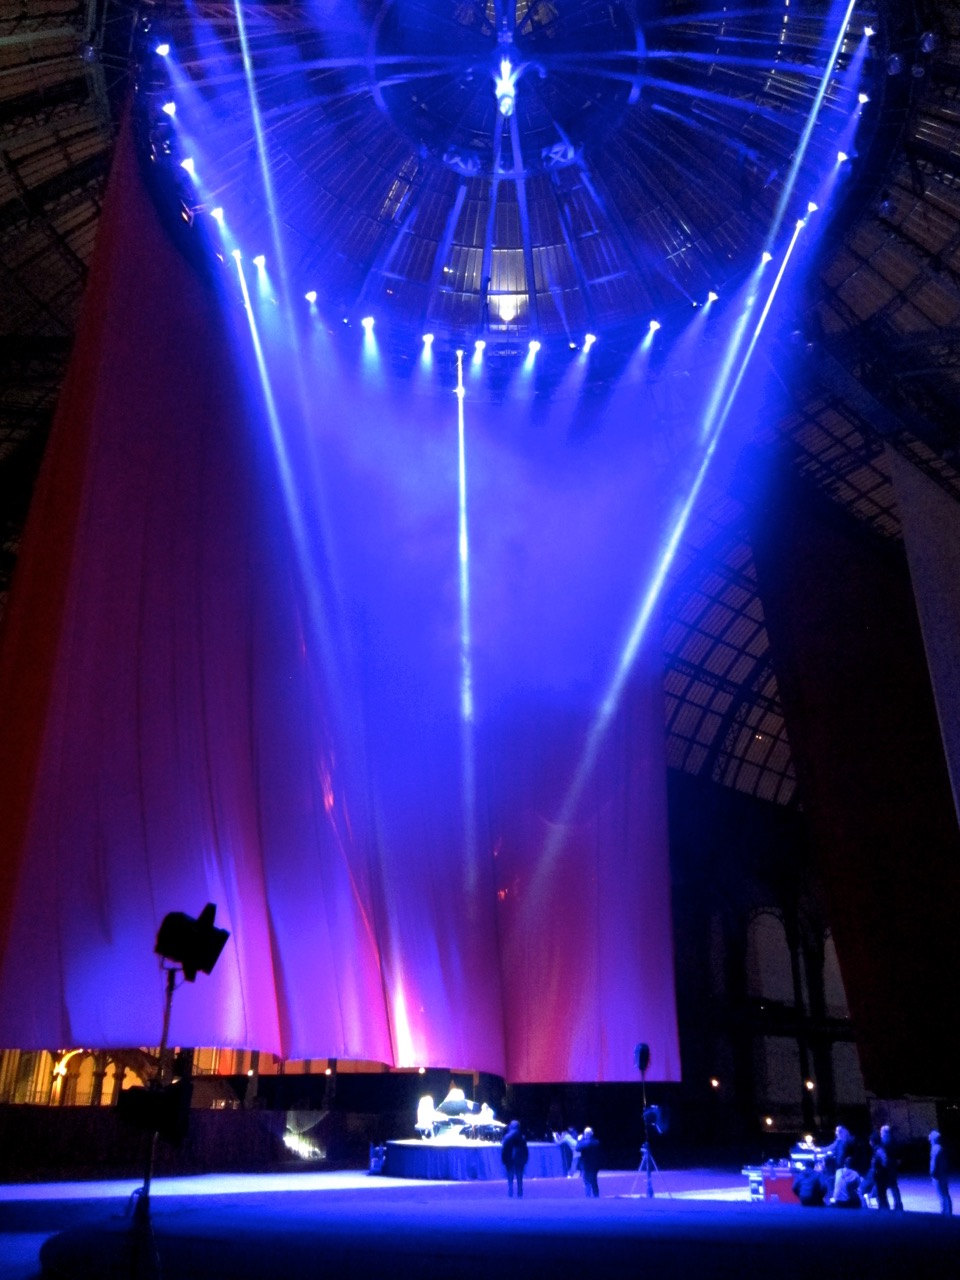 Nuit De Chine at Le Grand Palais 2014